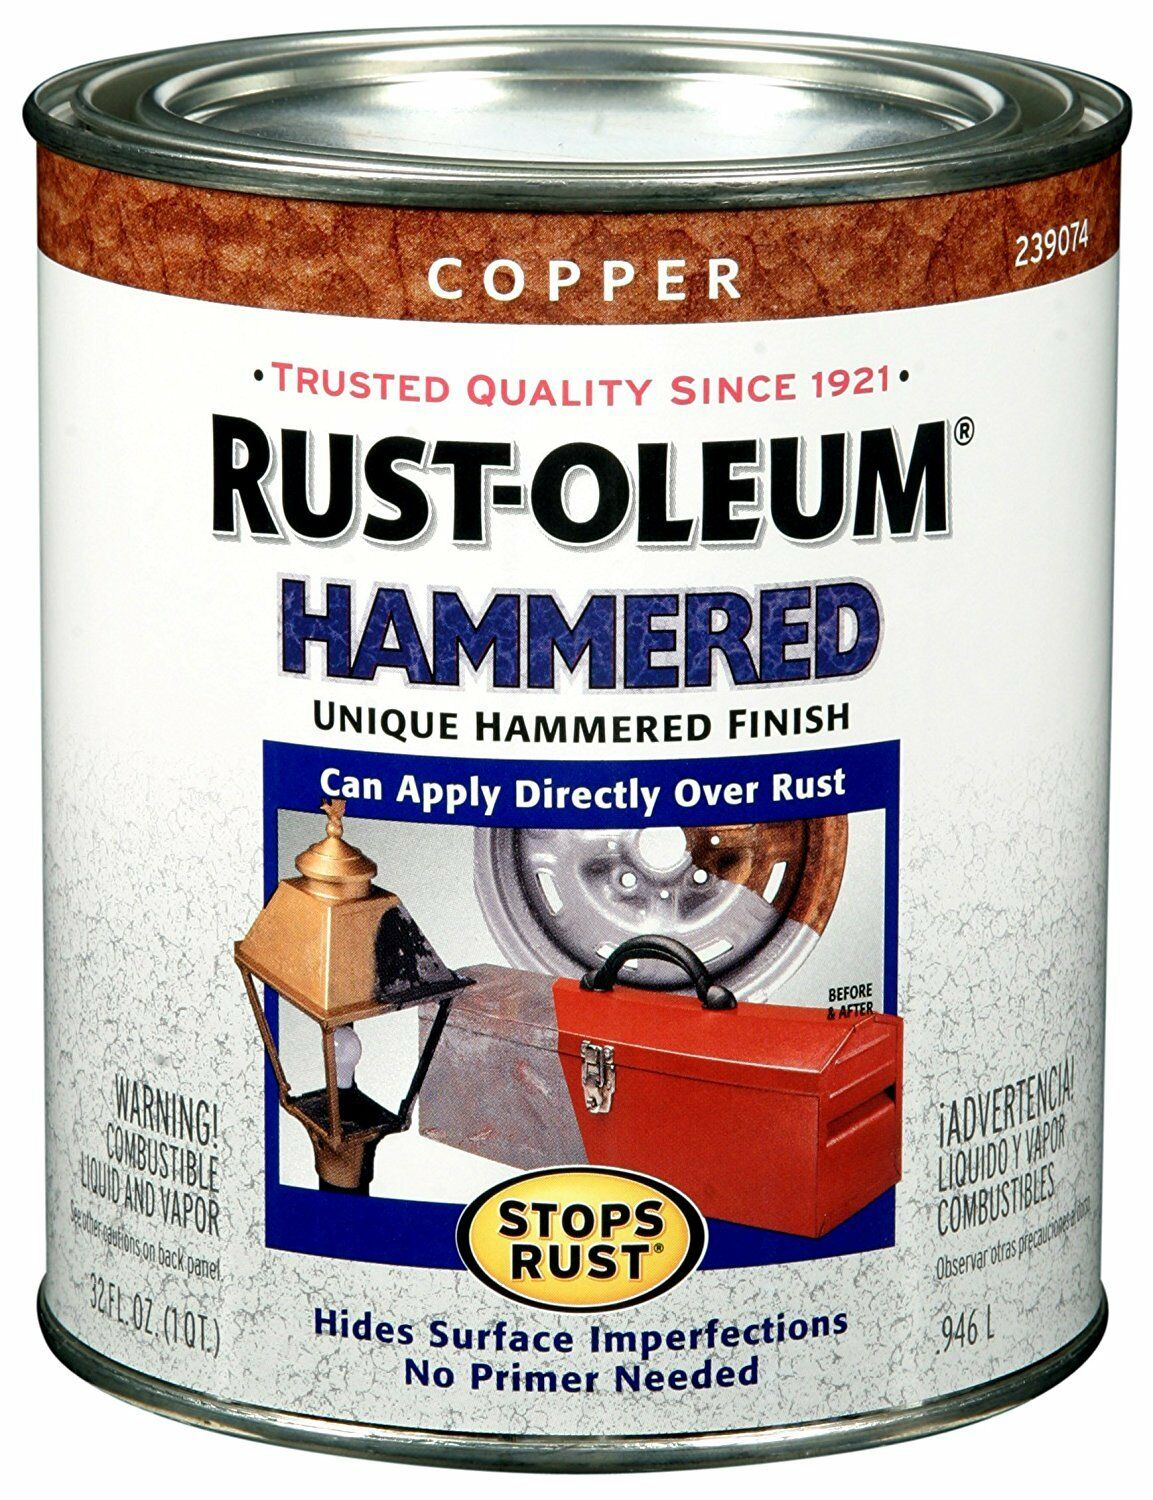 Details About Rust Oleum 239074 Hammered Metal Finish Copper 1 Quart Color Paint Touch Up